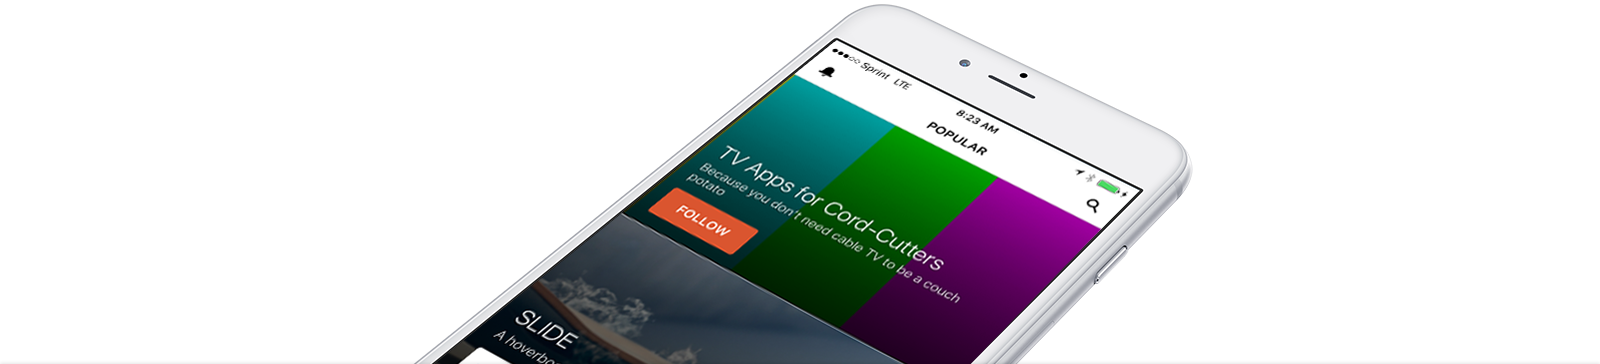 Product Hunt 3.0 for iOS - Product Hunt